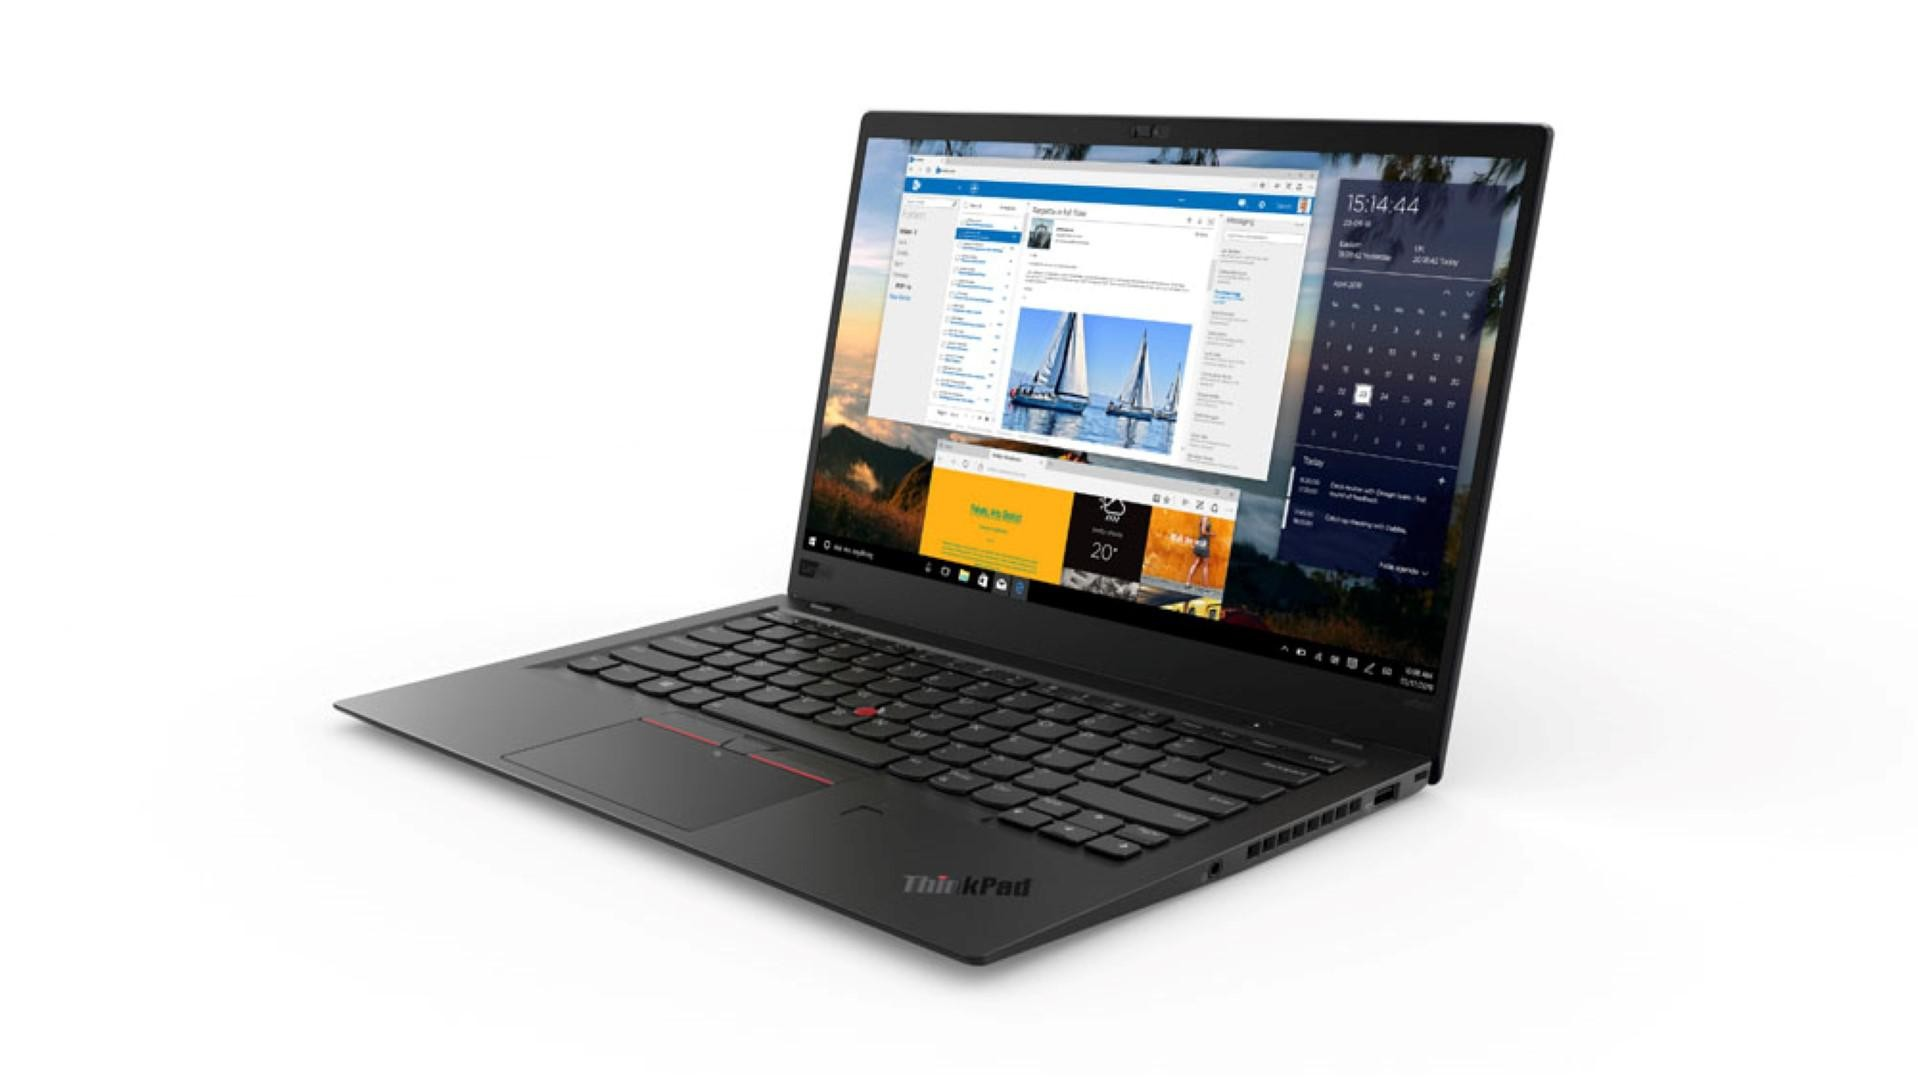 Laptop Lenovo ThinkPad X1 Carbon 6th, 14.0 FHD (1920x1080) IPS, Anti-Glare